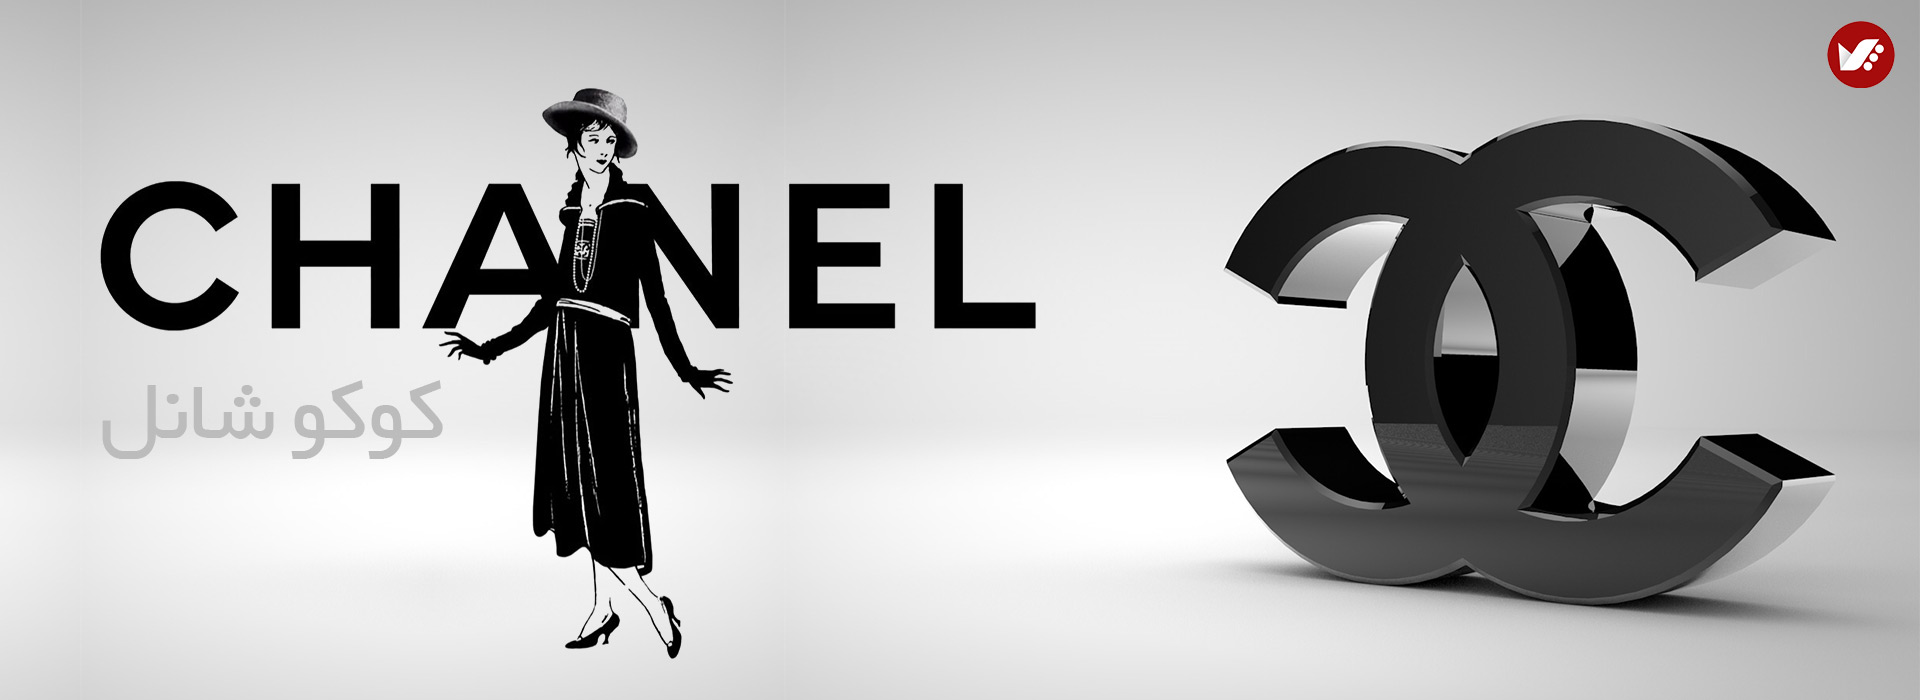 chanel banner - کوکو شانل